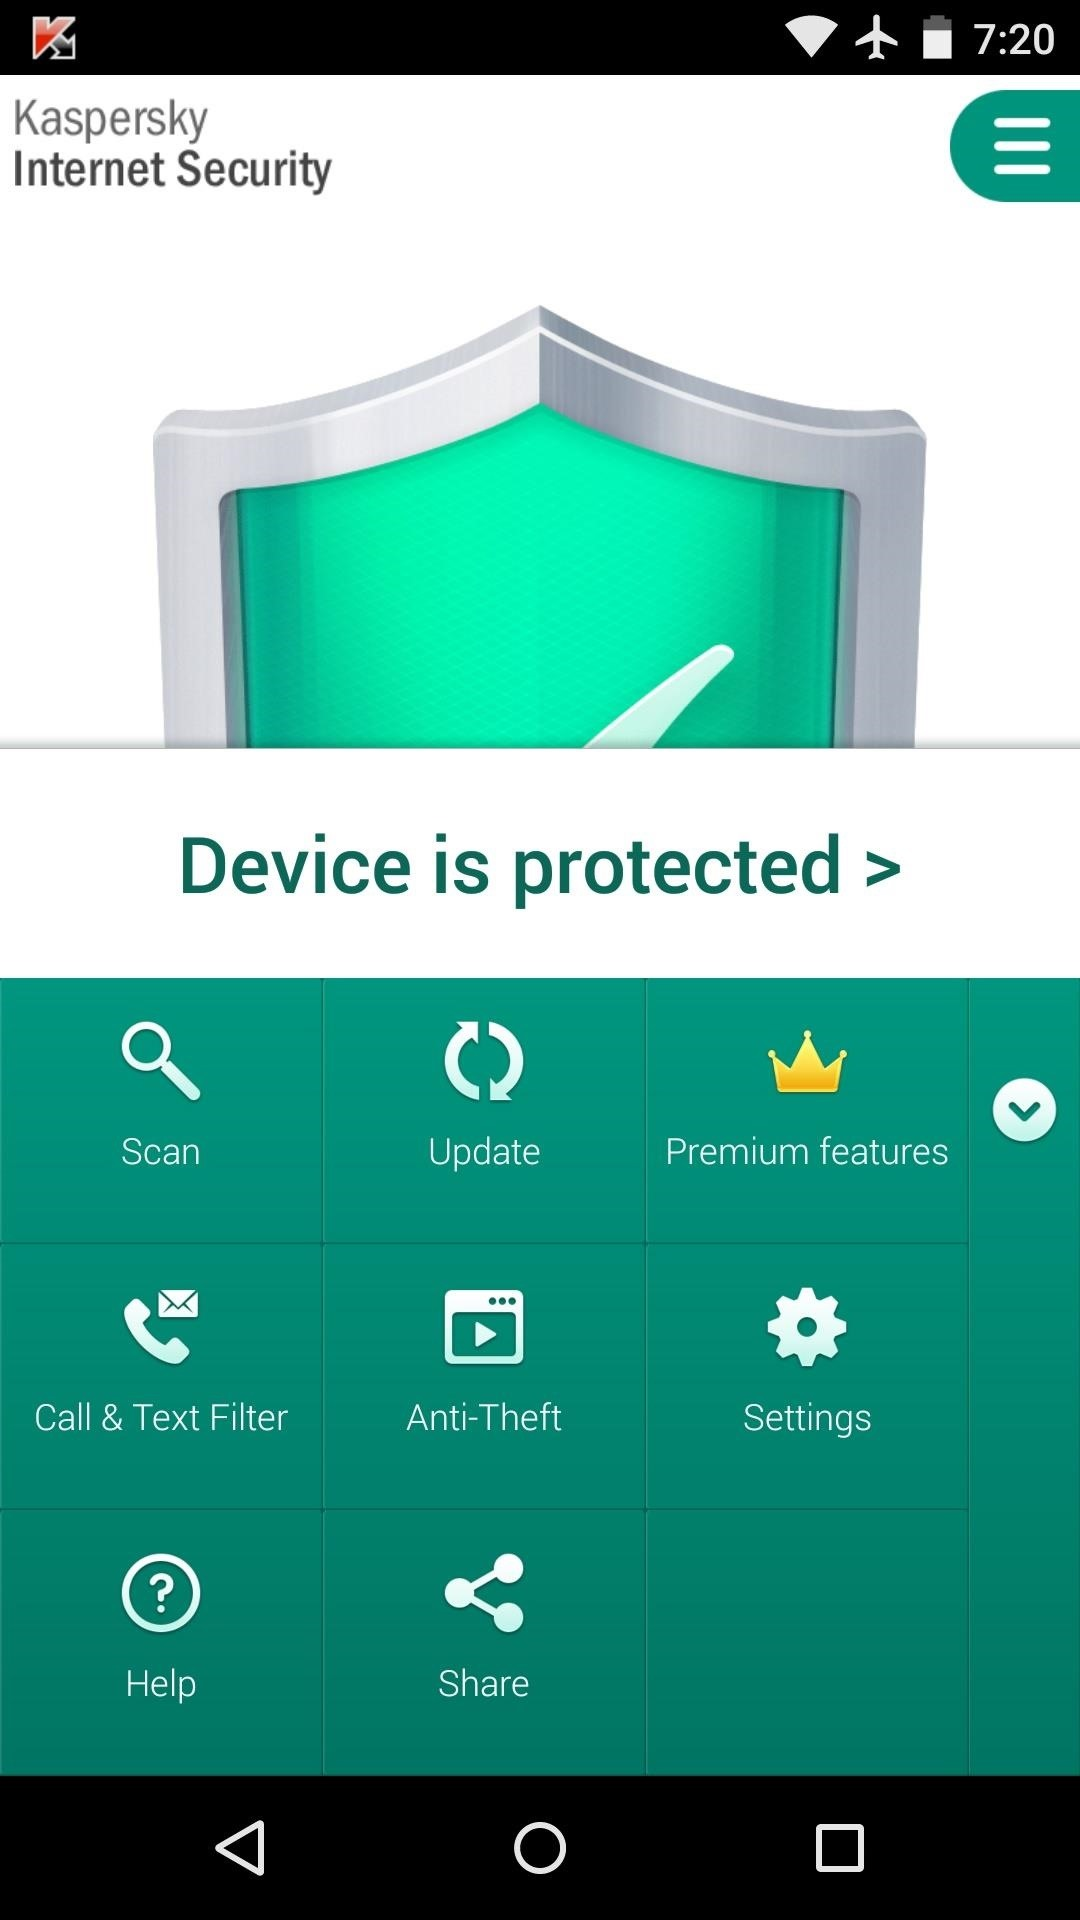 Best Android Antivirus: Avast vs. AVG vs. Kaspersky vs. McAfee